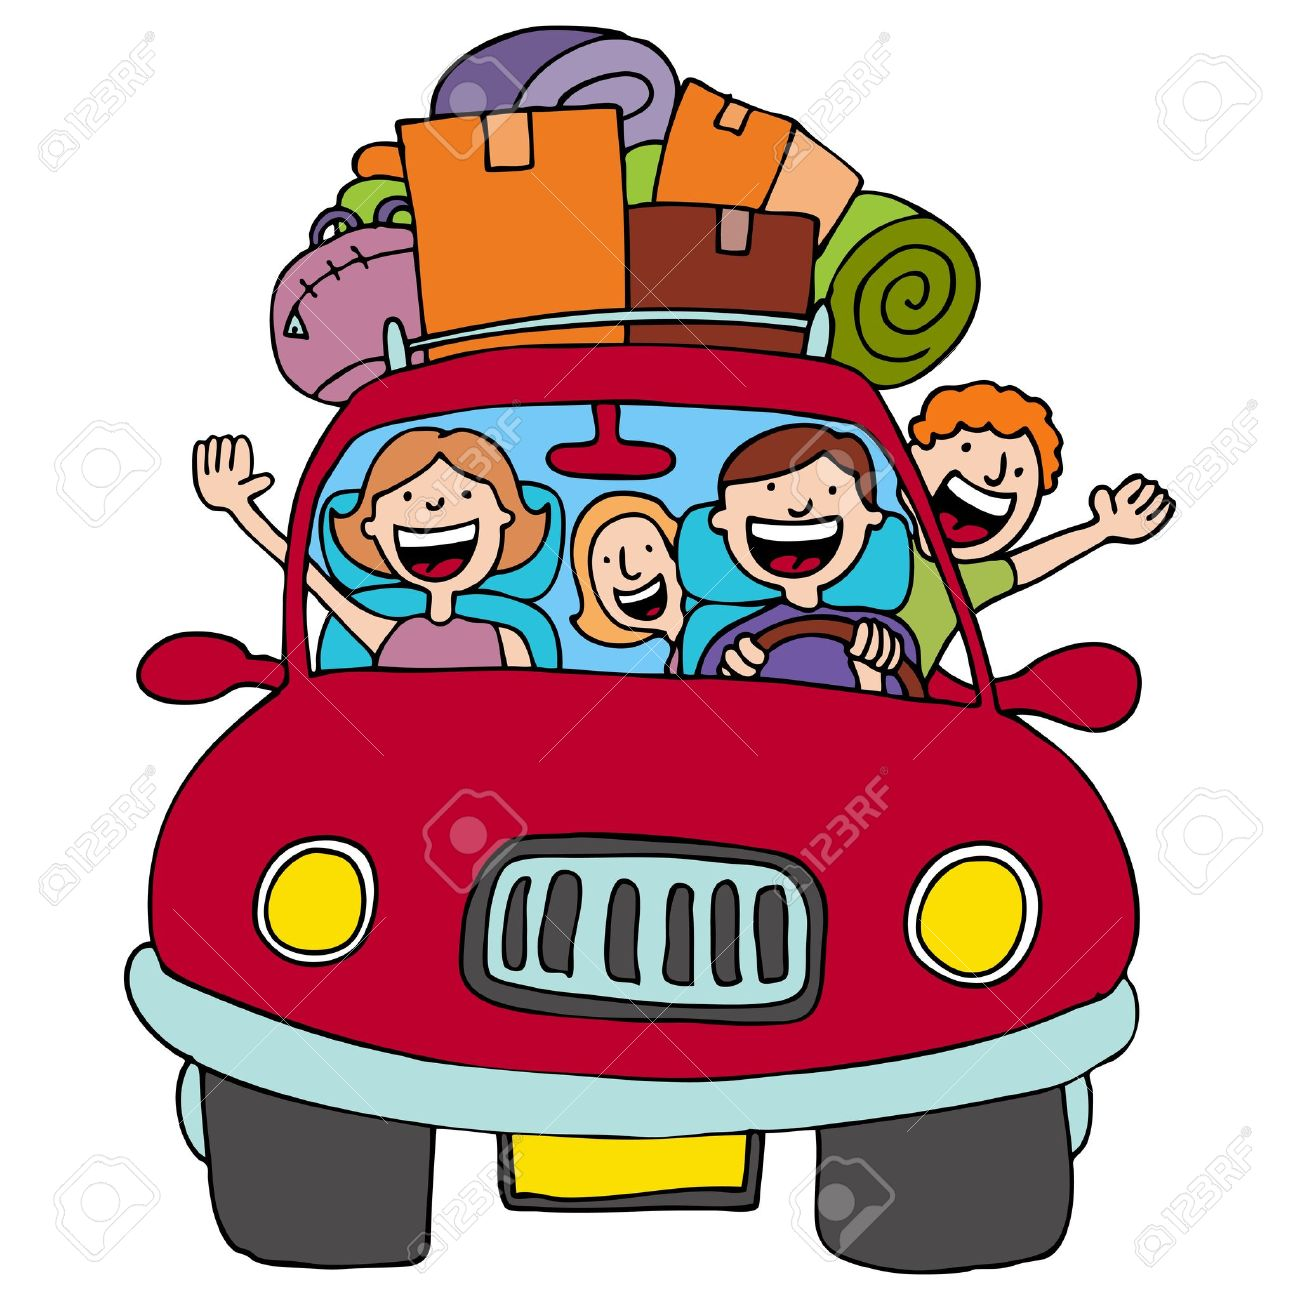 an image of a family driving in their car with luggage on top rh 123rf com Cartoon Convertible Car Road Trip Clip Art